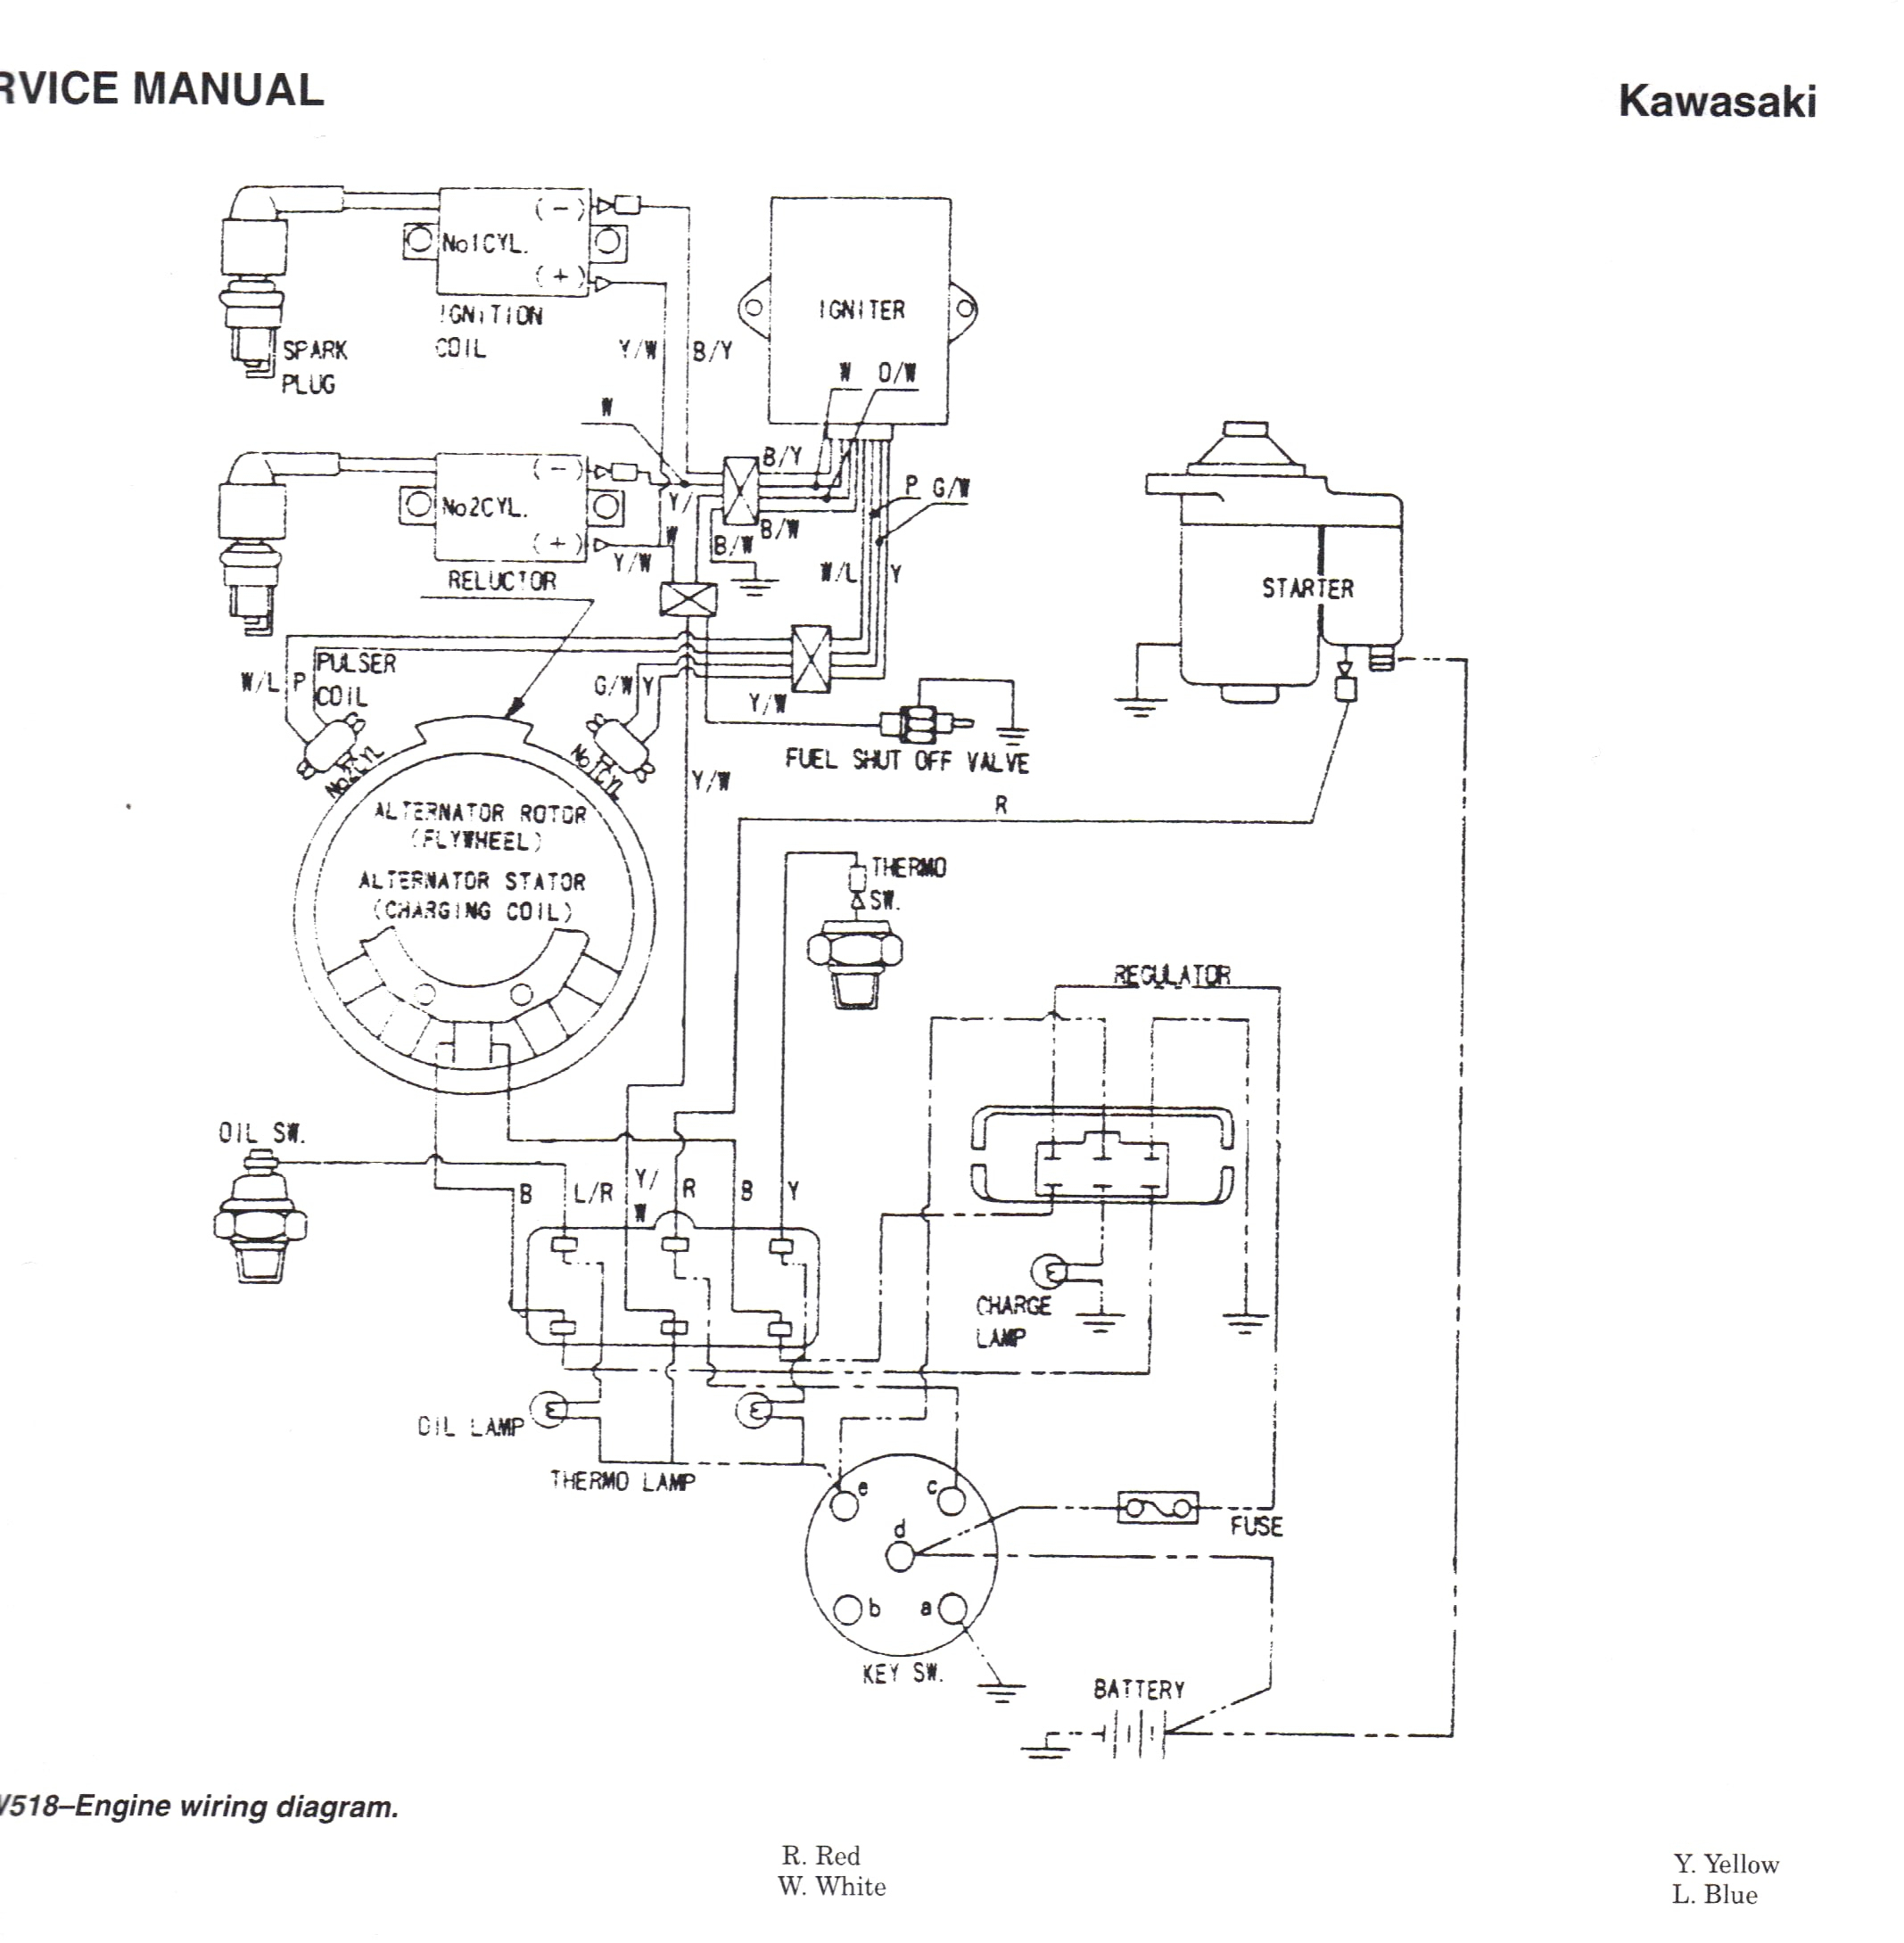 Wiring Diagram For Ford 1120 Tractor - Wiring Diagrams Hubs - Ford Alternator Wiring Diagram